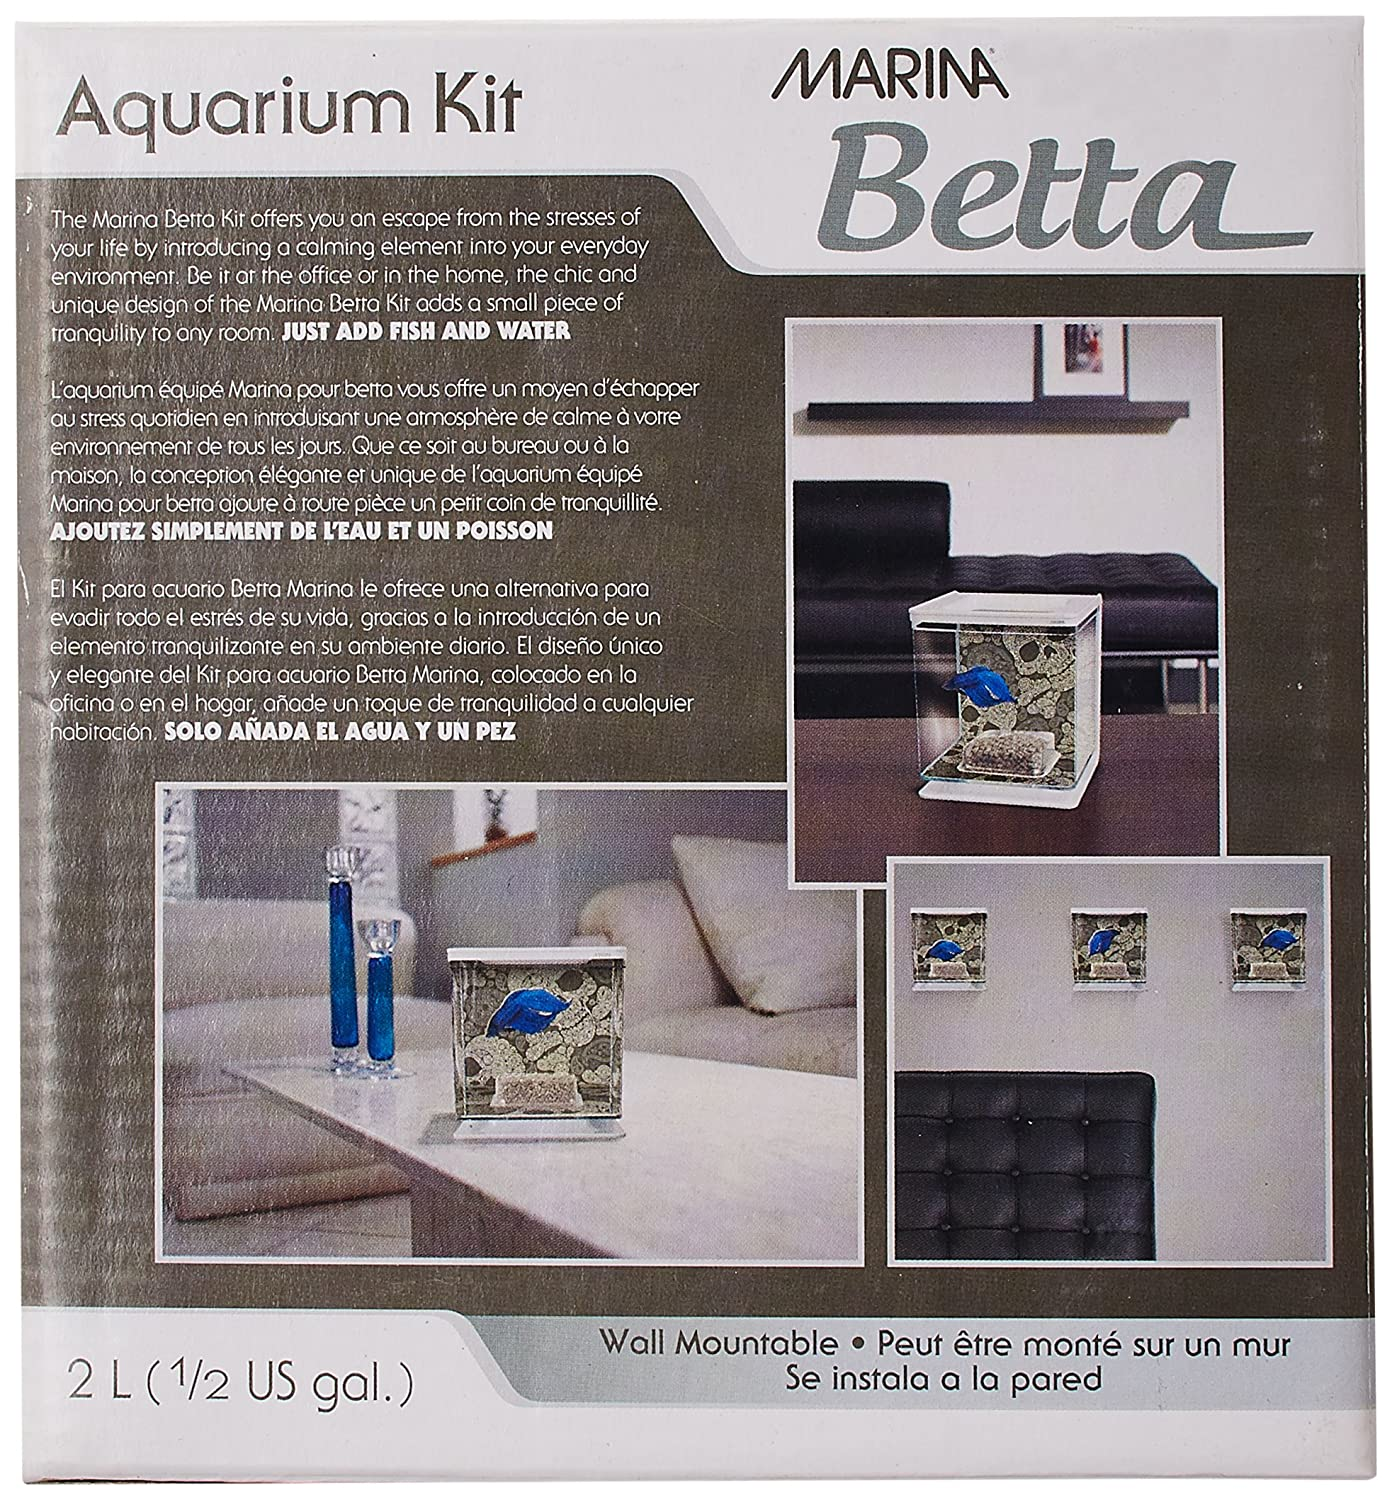 Amazon.com : Marina Betta Aquarium Starter Kit, Skull : Fish Tank Gravel : Pet Supplies